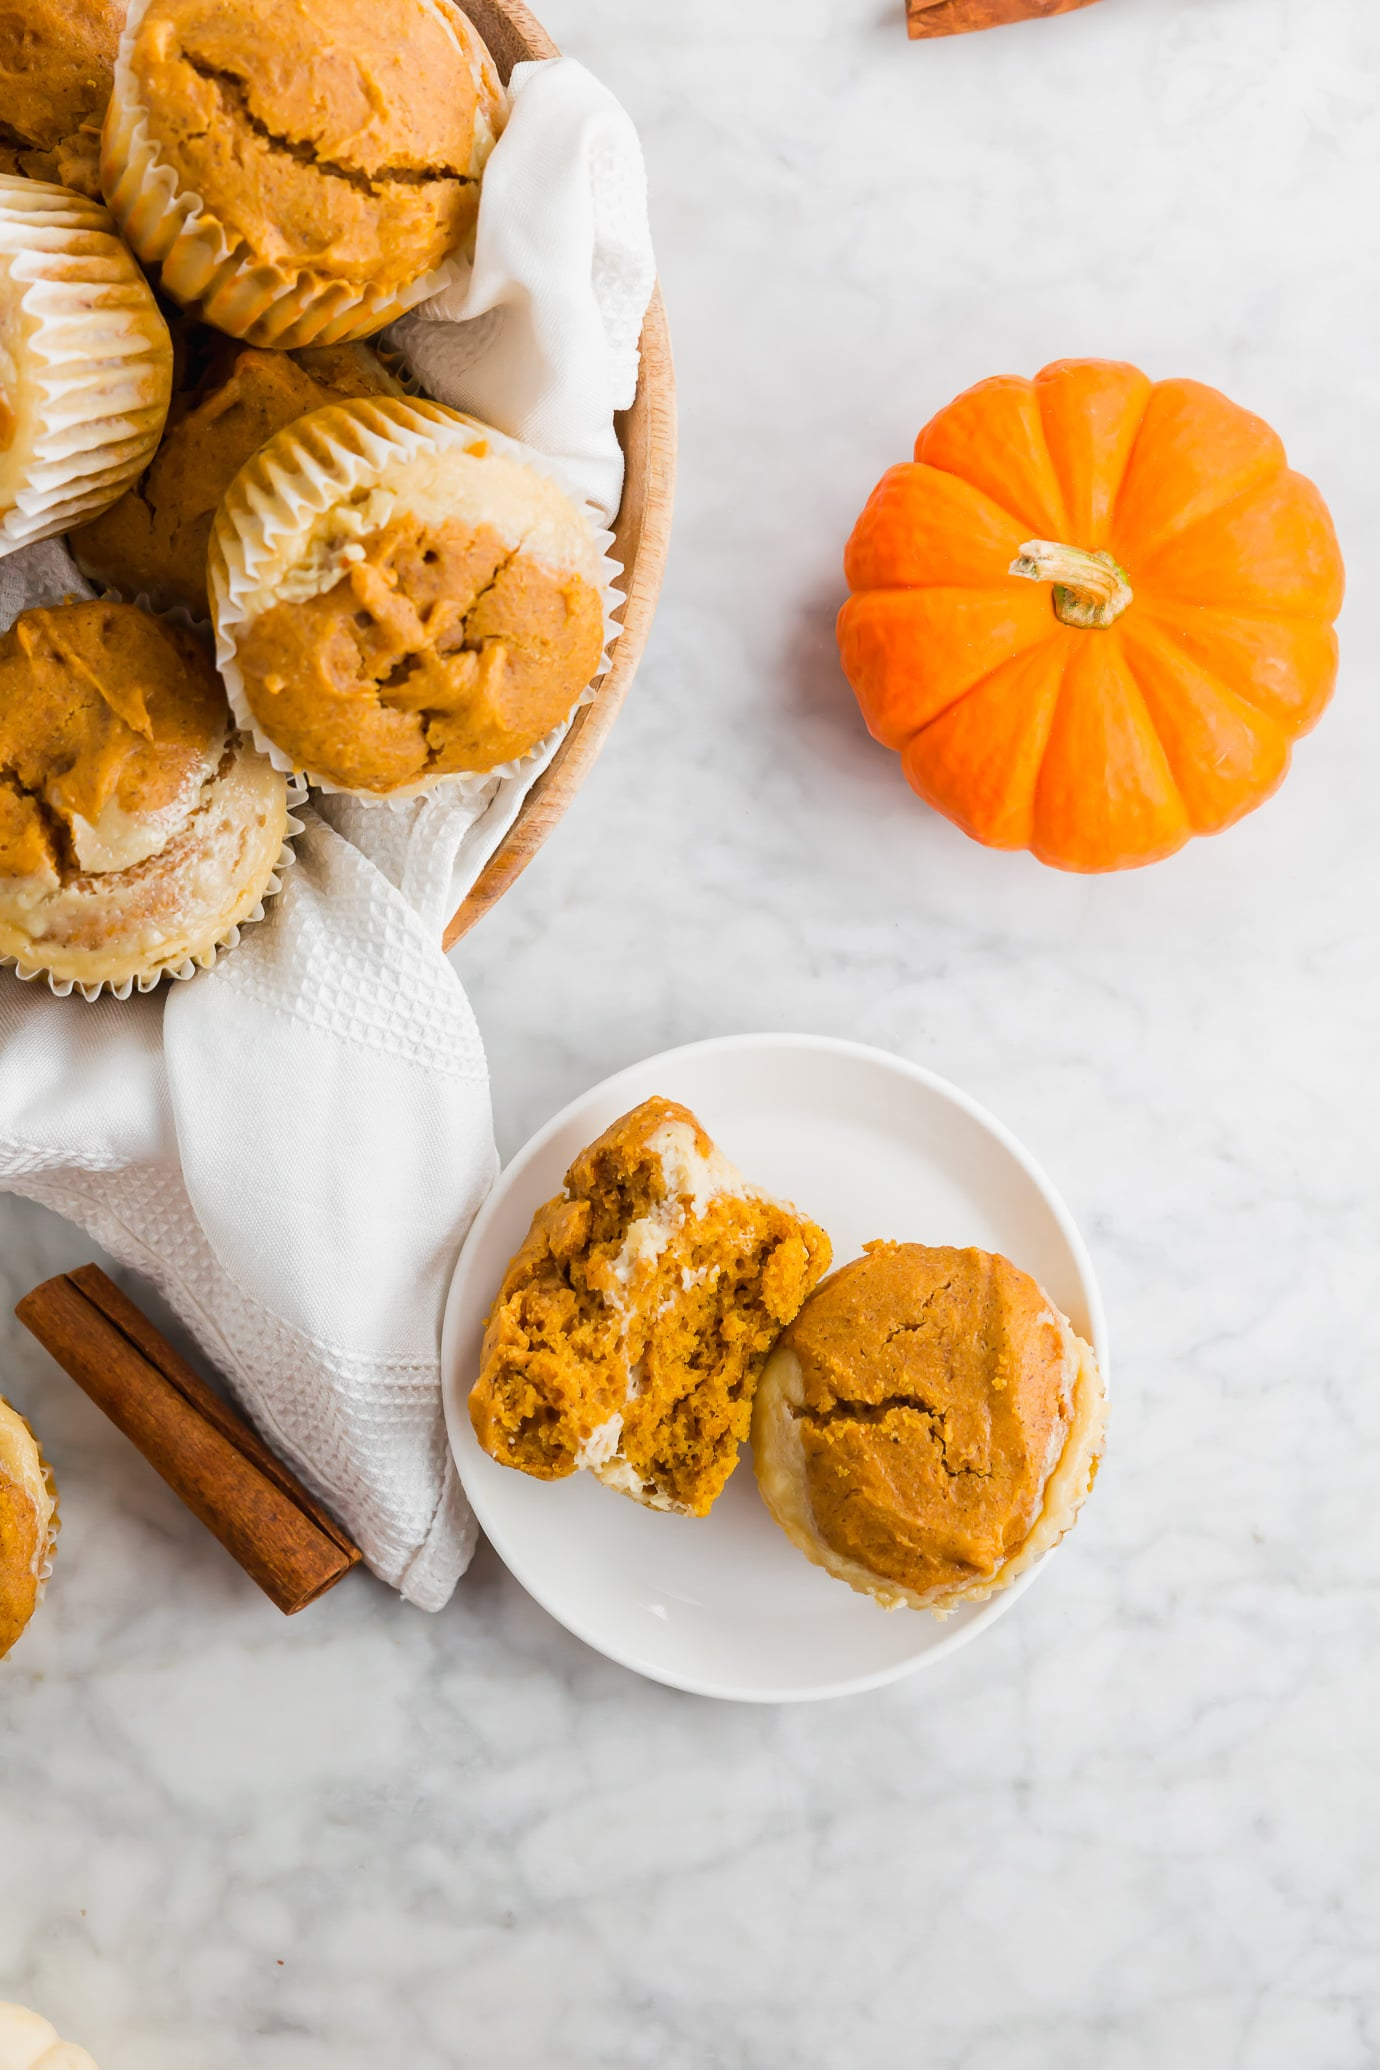 A photo of a pumpkin cheesecake muffin split in half on a plate.